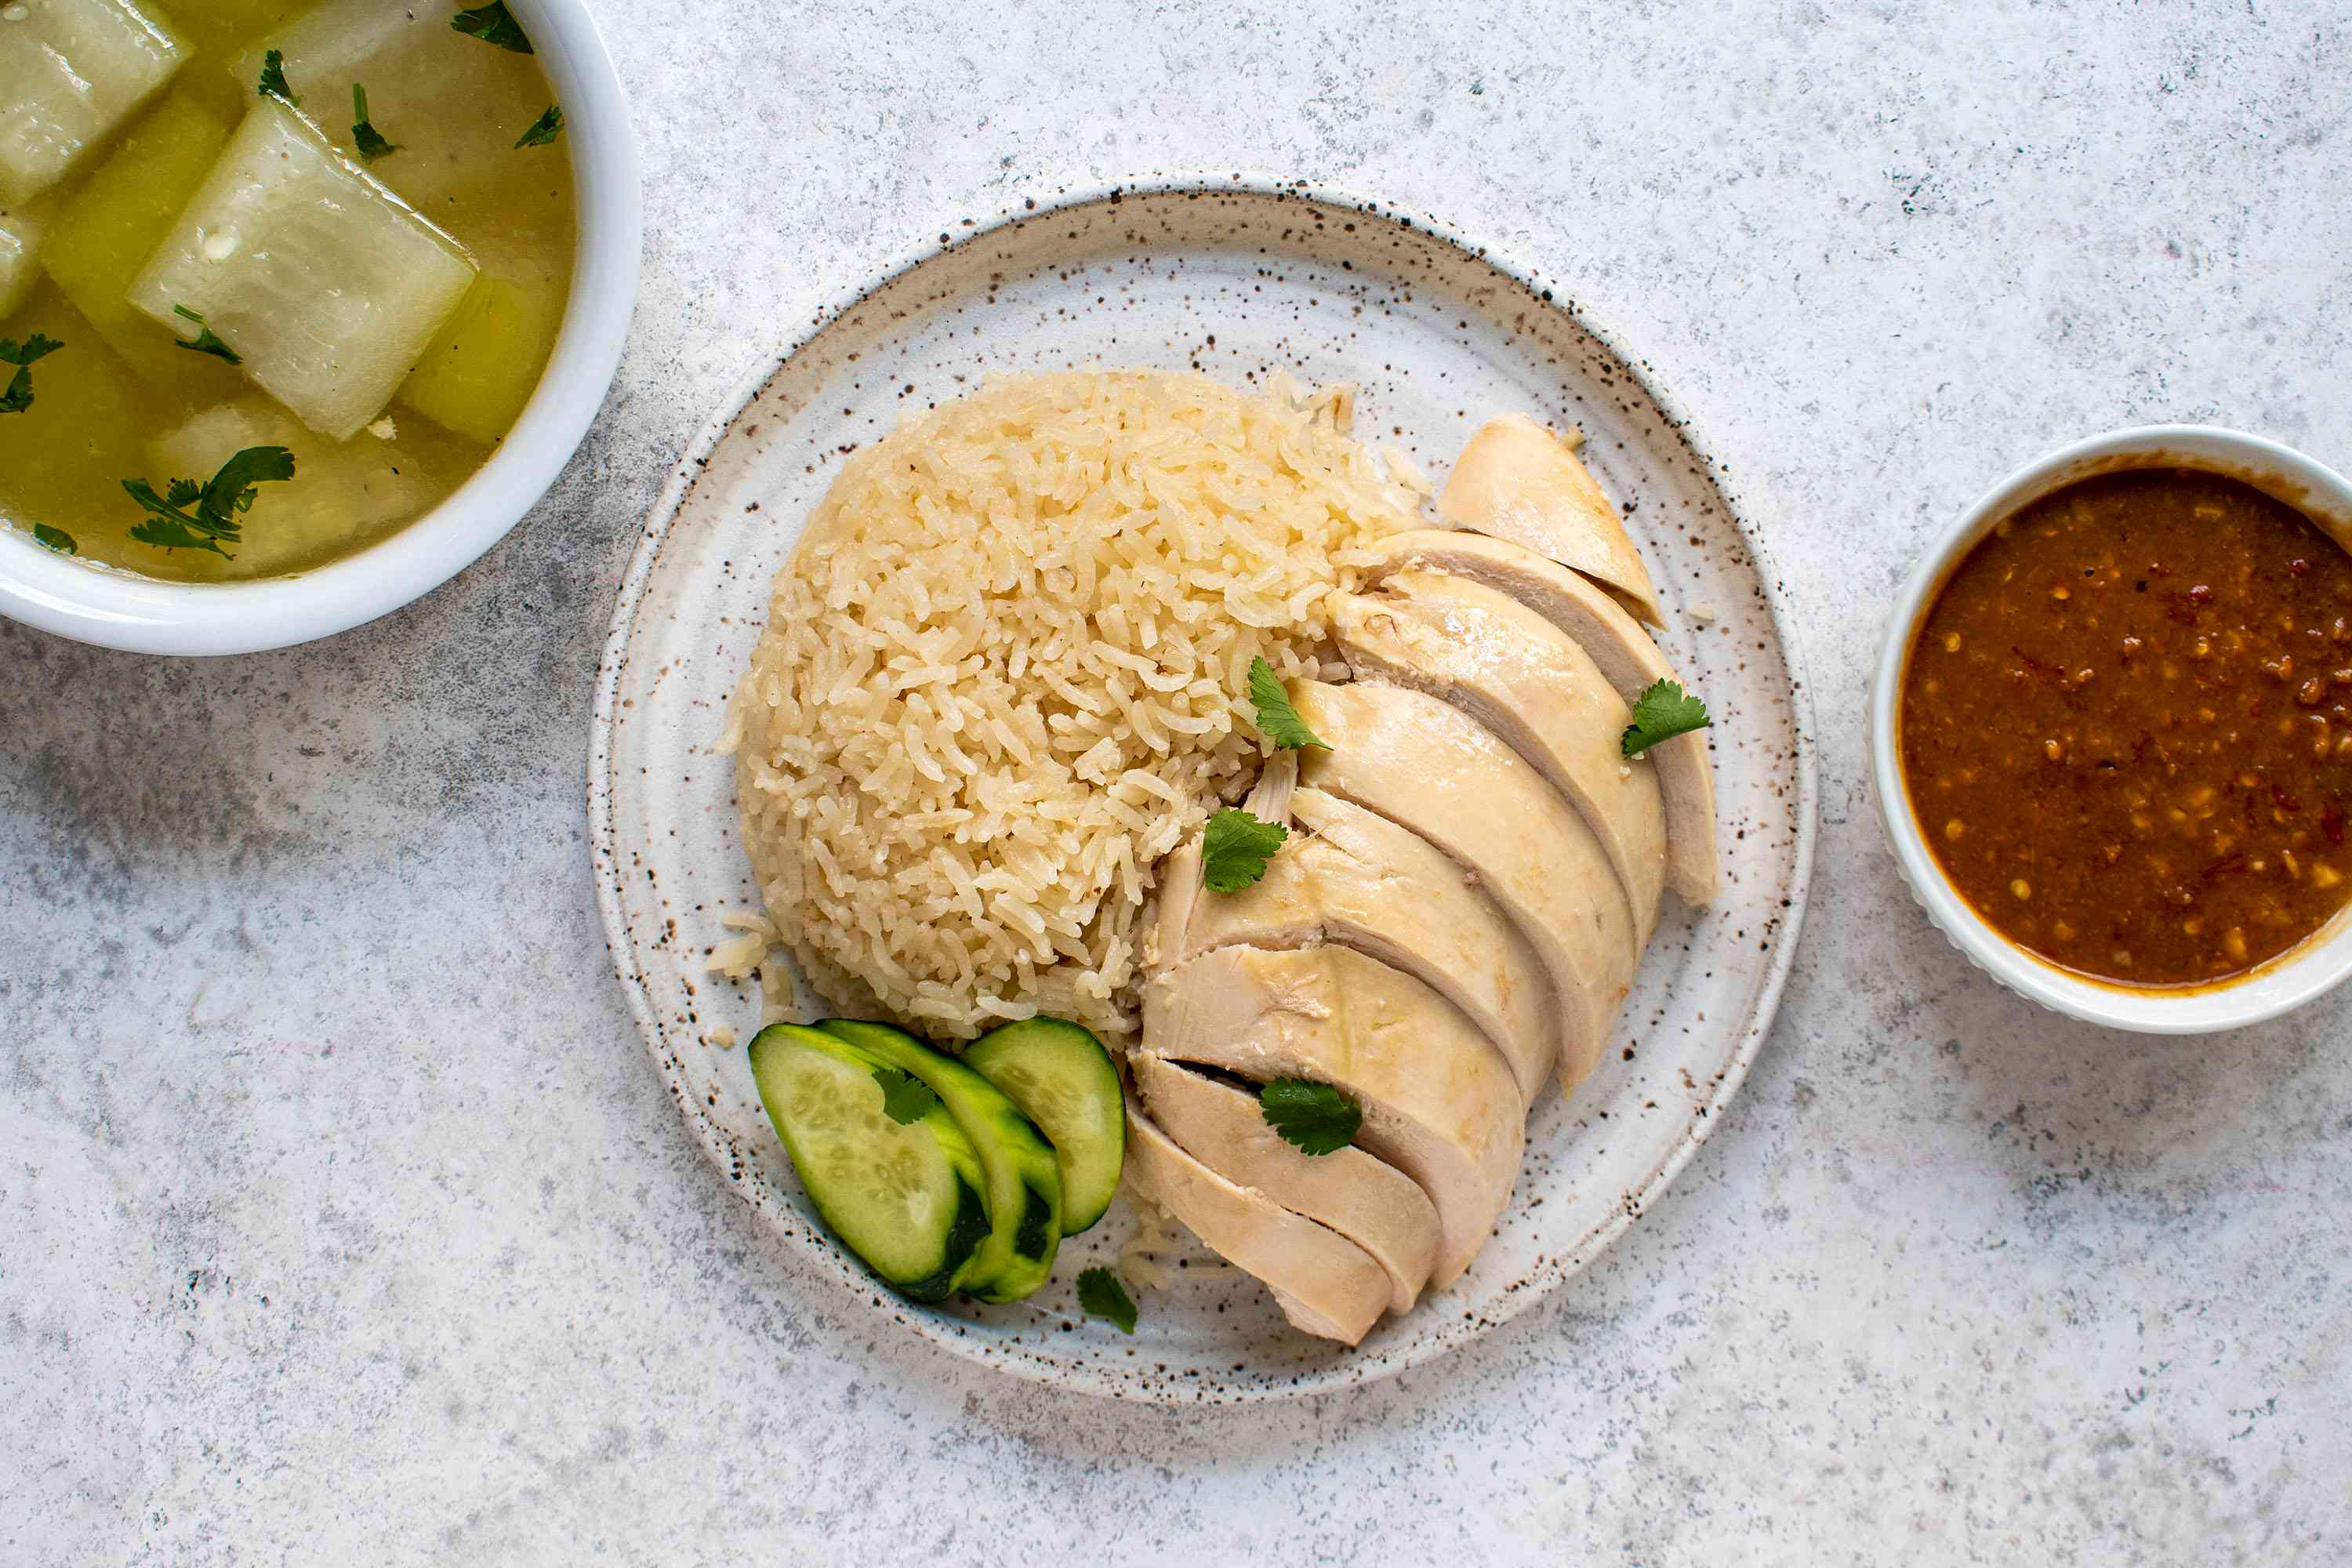 Thai Khao Man Gai, Place the sliced breast meat on top of the rice mound, garnishing it with sliced cucumber and cilantro